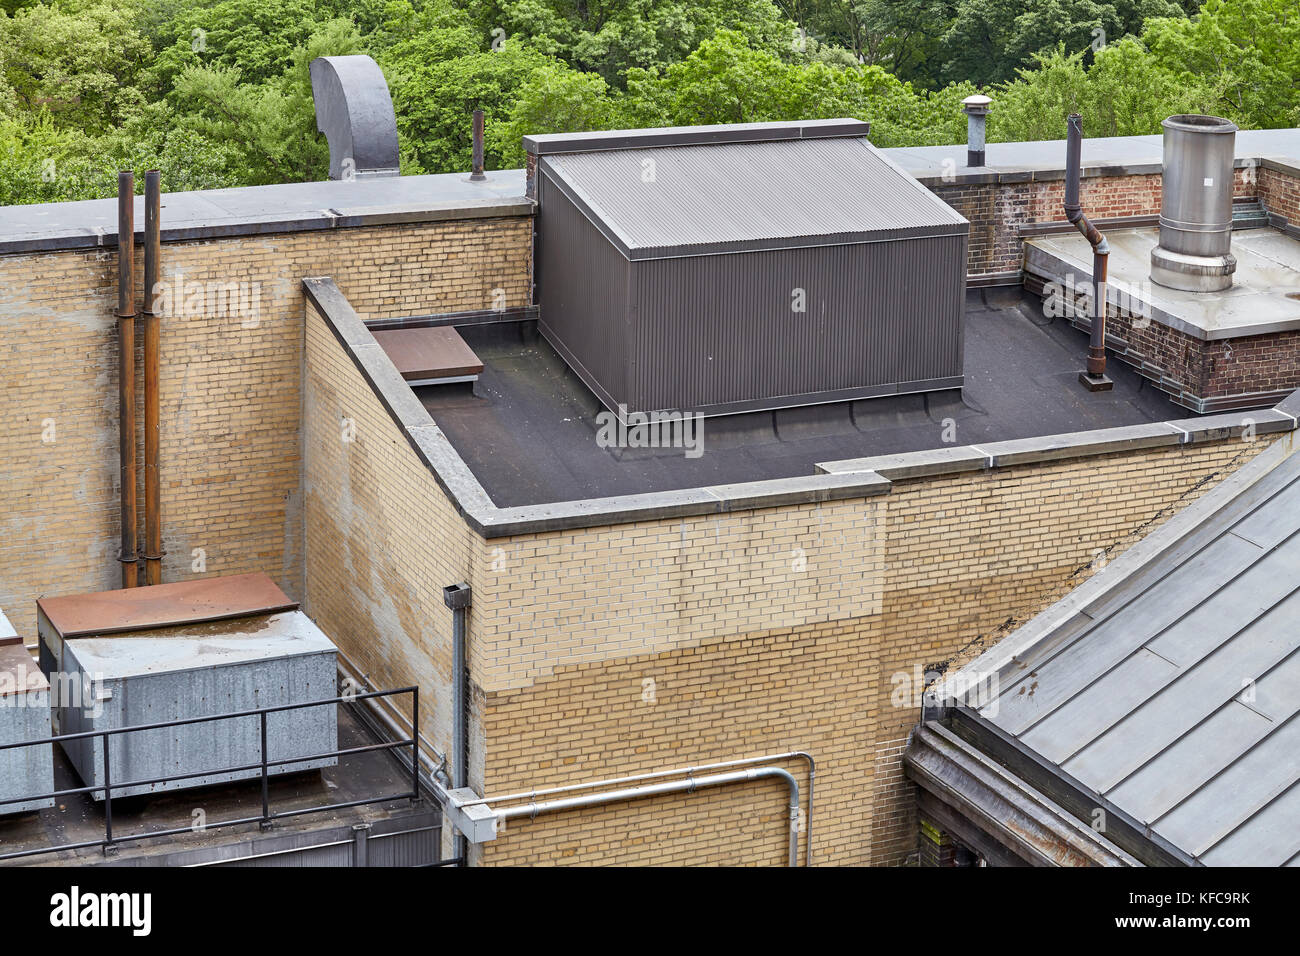 Ventilation and air conditioning infrastructure on apartment building rooftop. - Stock Image